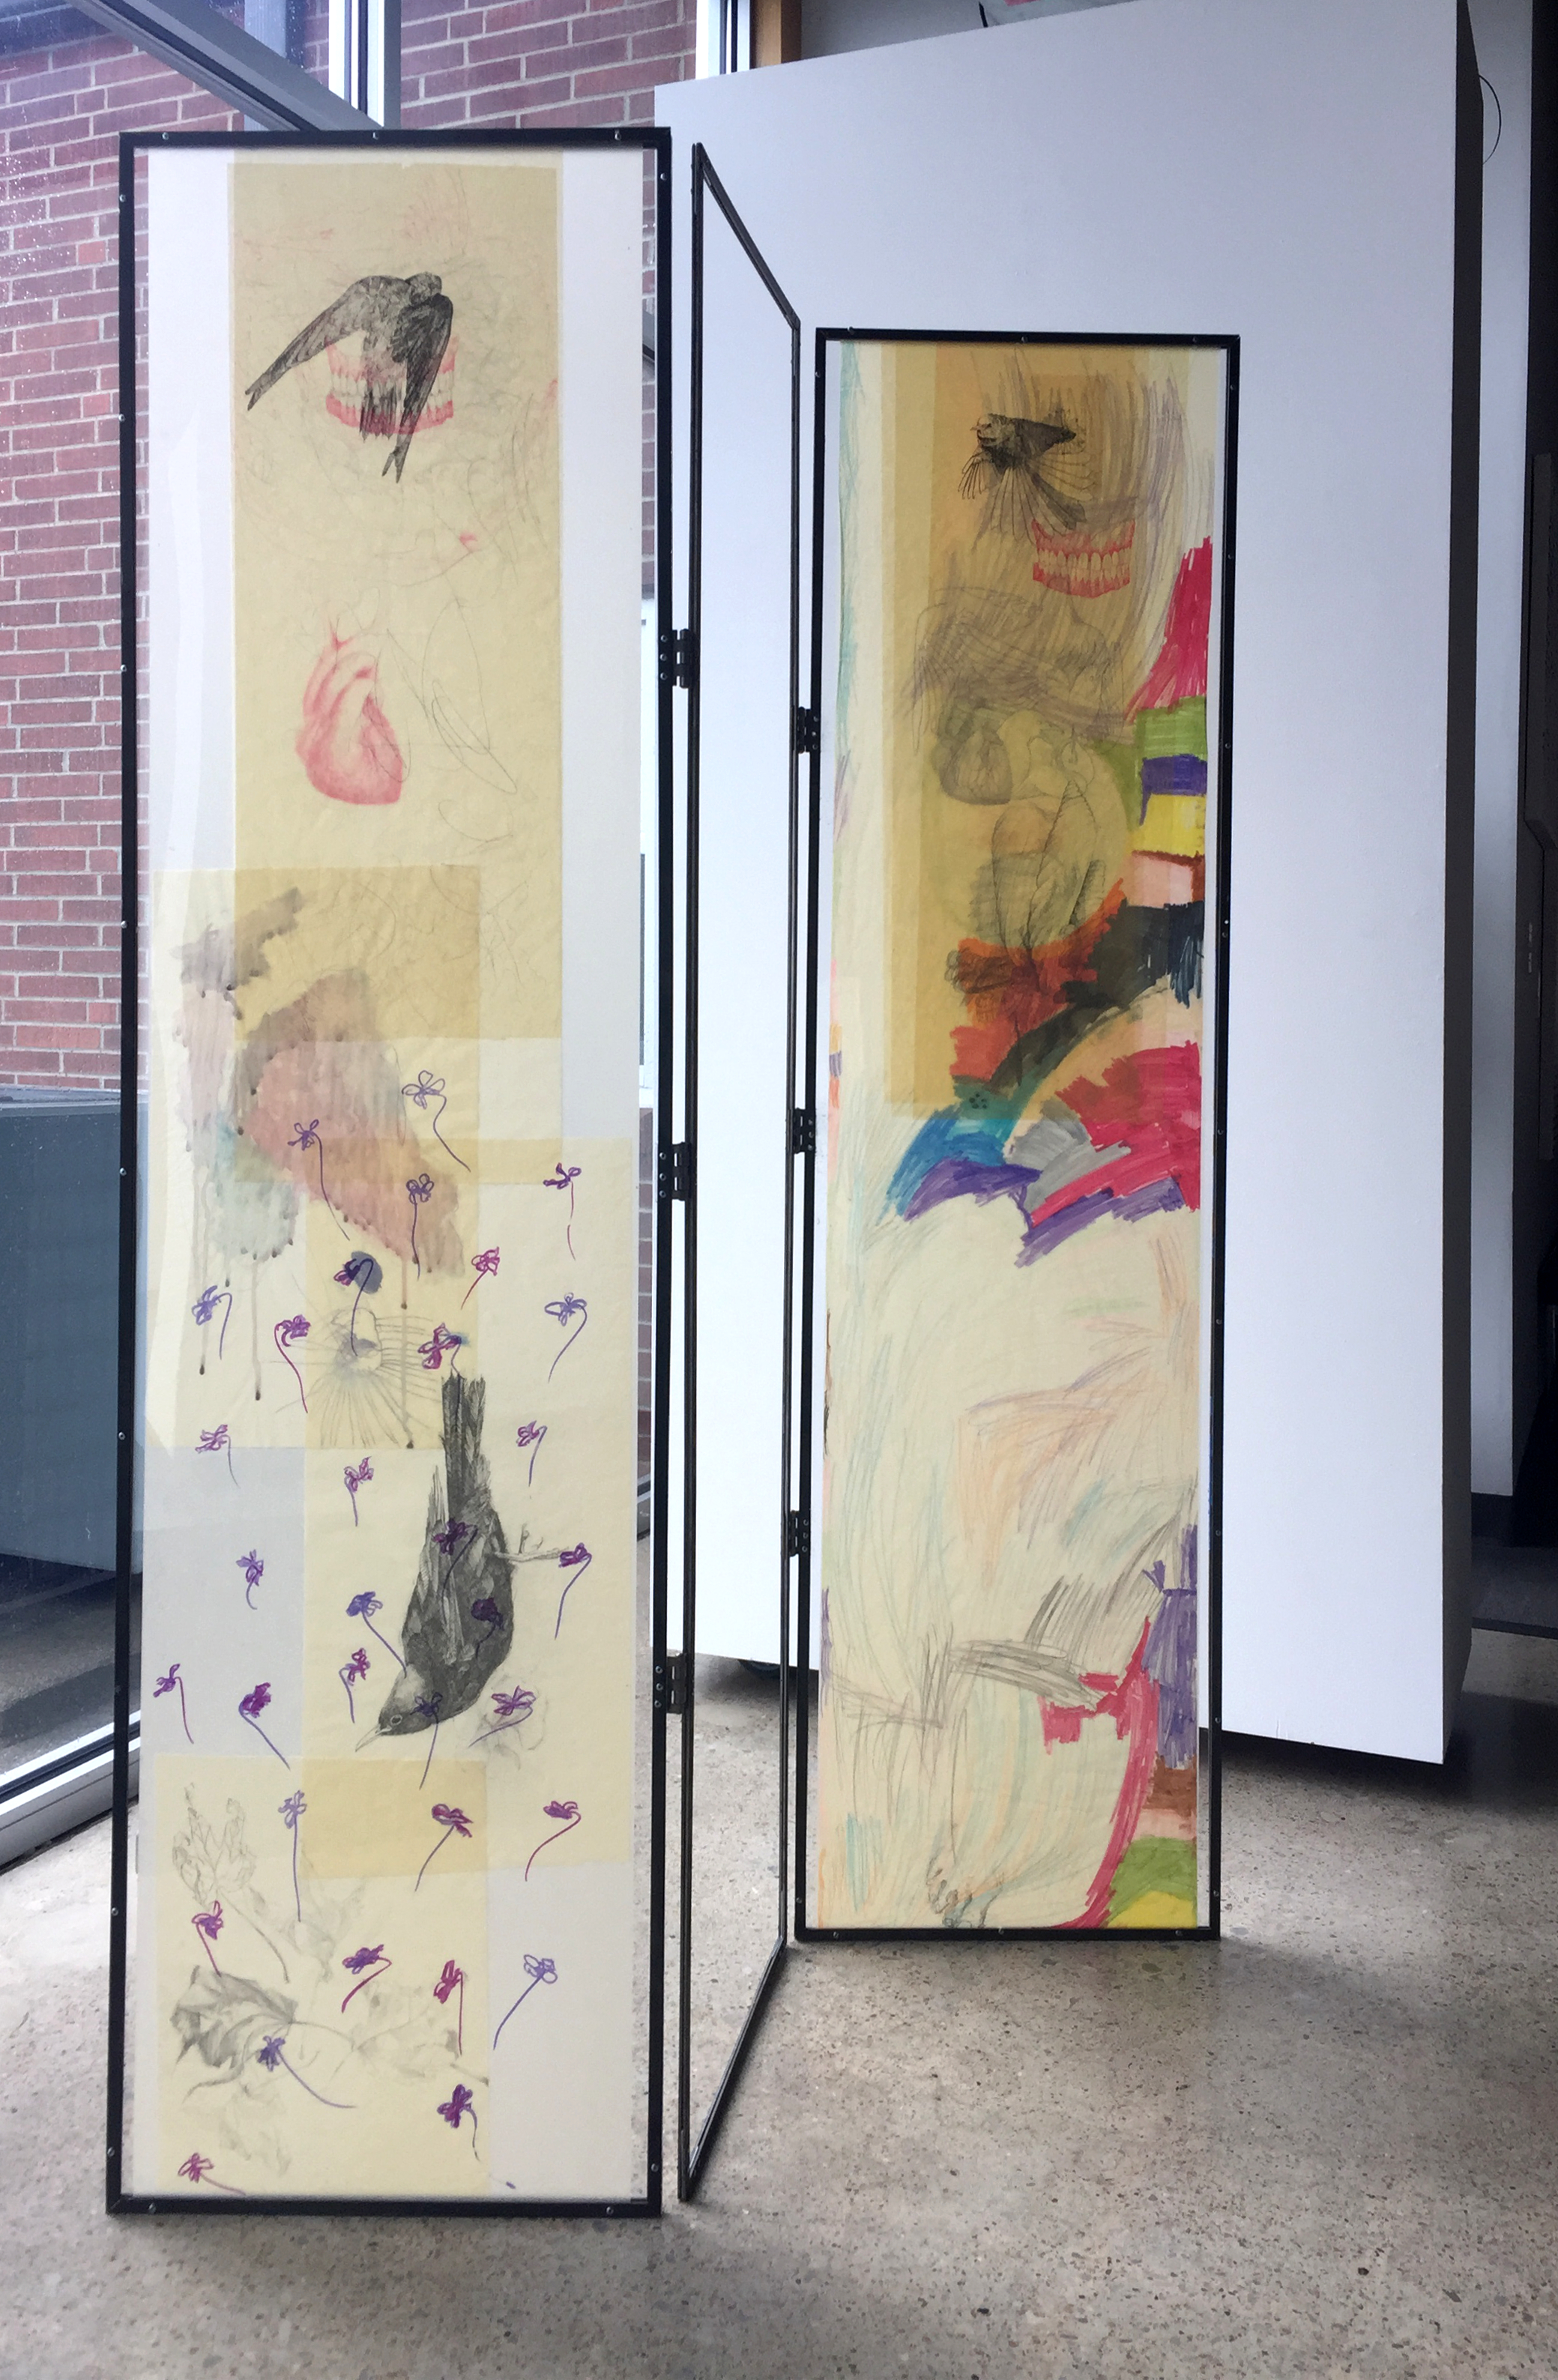 Katherine Rutecki,  Trifold Screen,  Mixed media on paper, steel, Plexiglas, with drawing inclusions by Frankie June Jacomb (daughter), 140x30x185cm, 2015-2017